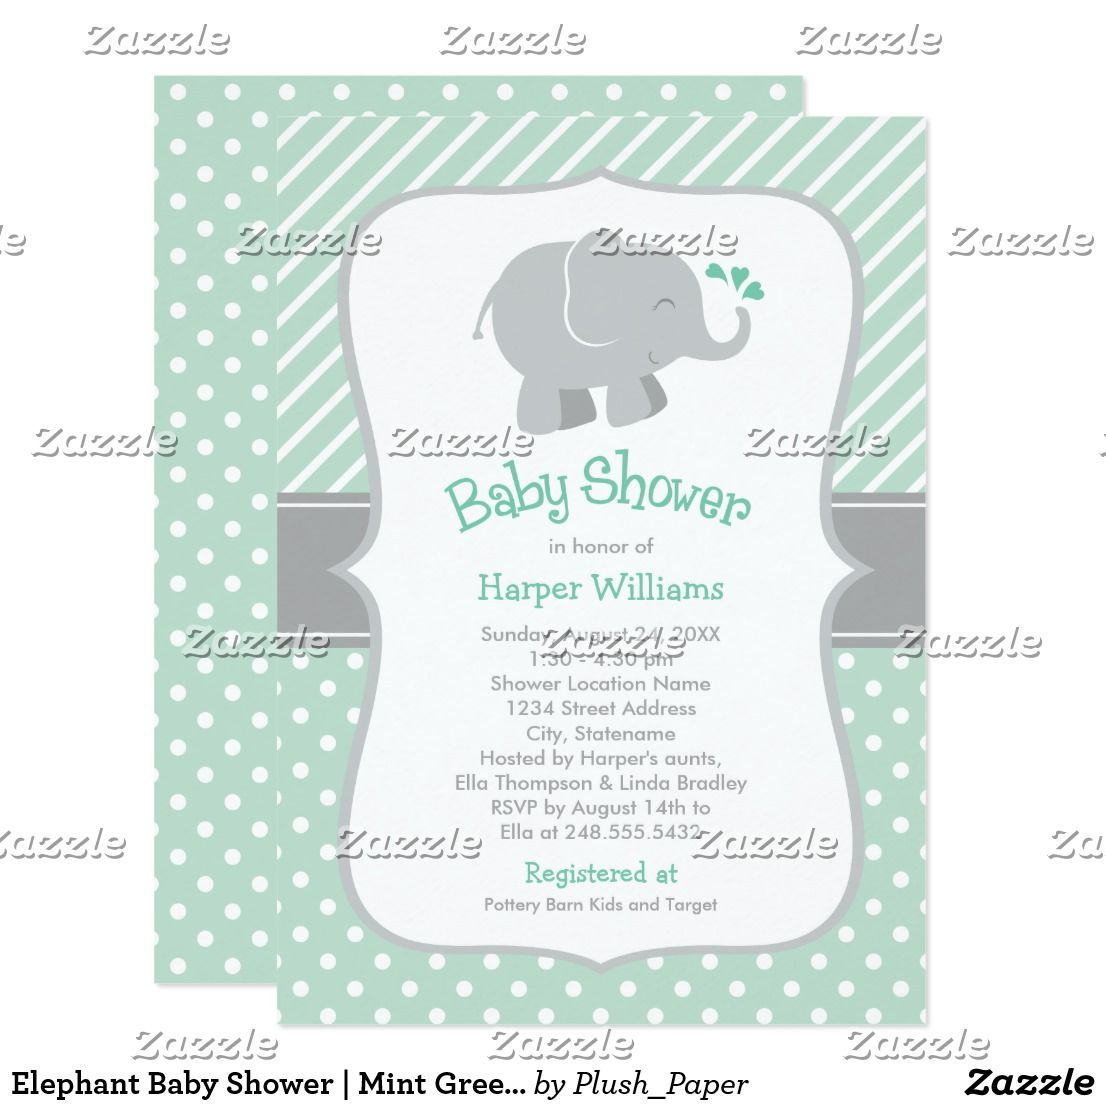 Elephant Baby Shower Invitations Mint Green In 2018 Babies And